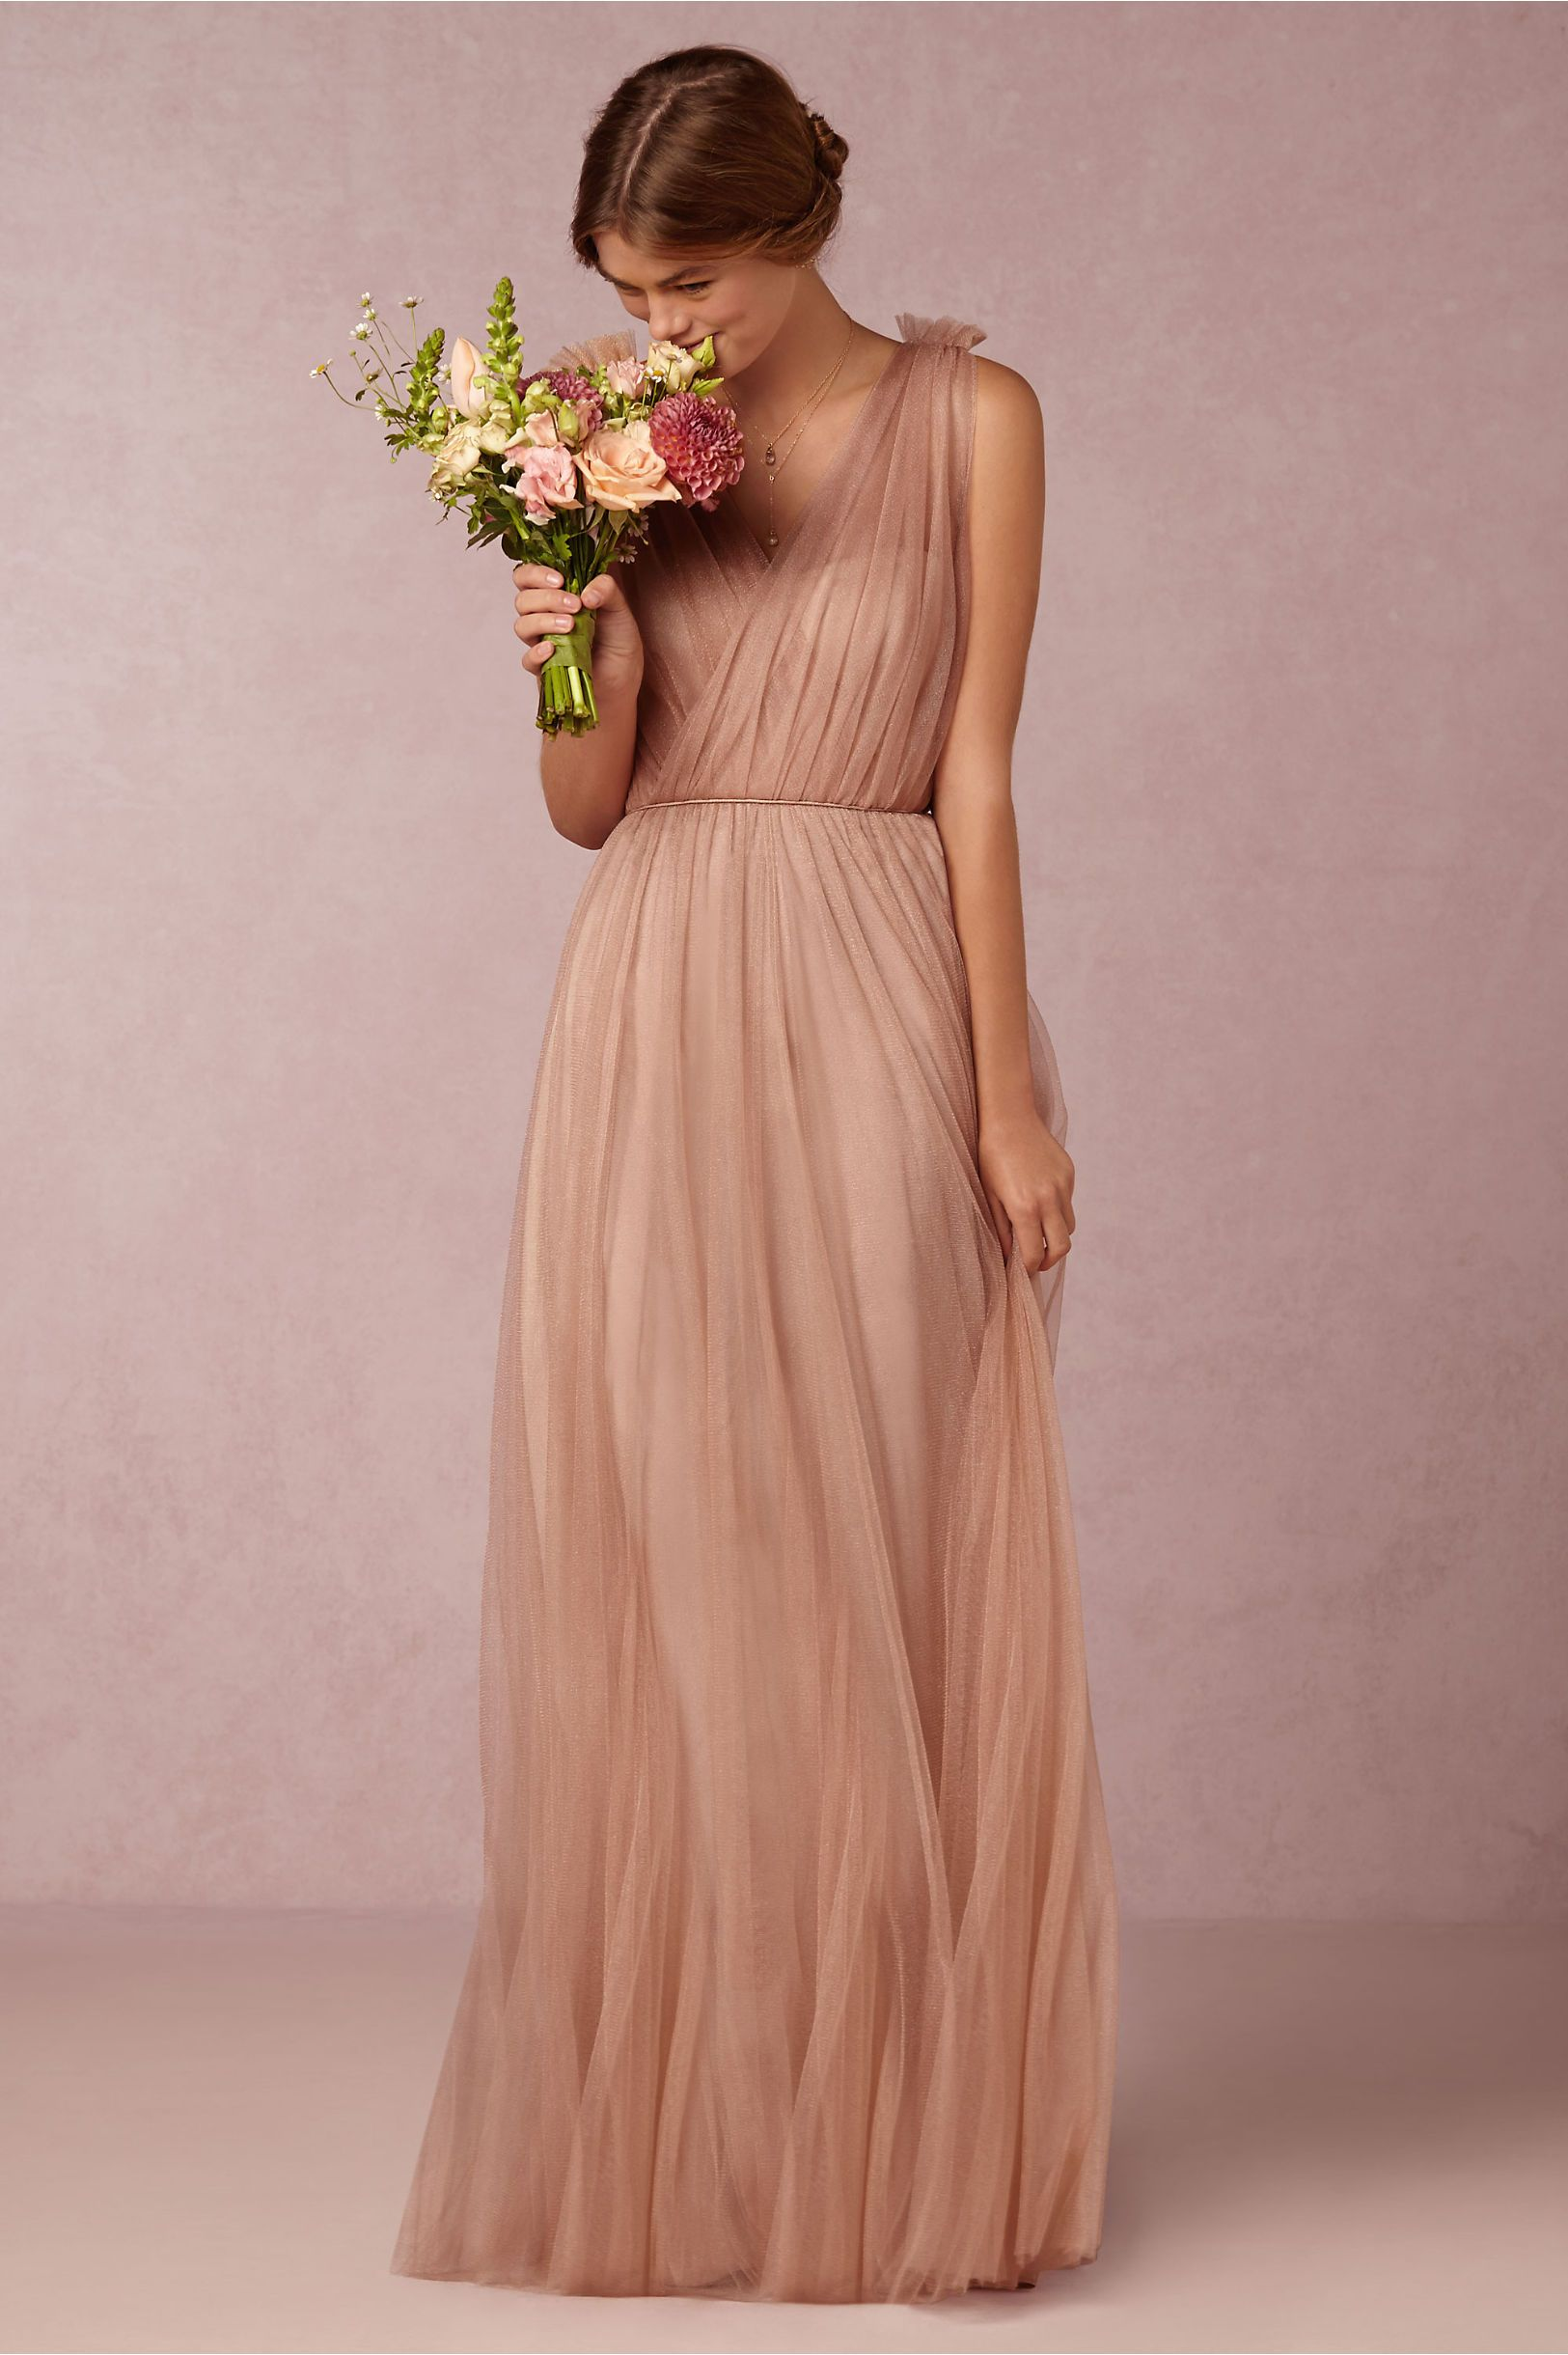 Long pink tulle bridesmaid dress emmy dress in feather from lovely bridesmaid dress emmy dress in bridesmaids bridesmaid dresses at bhldn ombrellifo Image collections